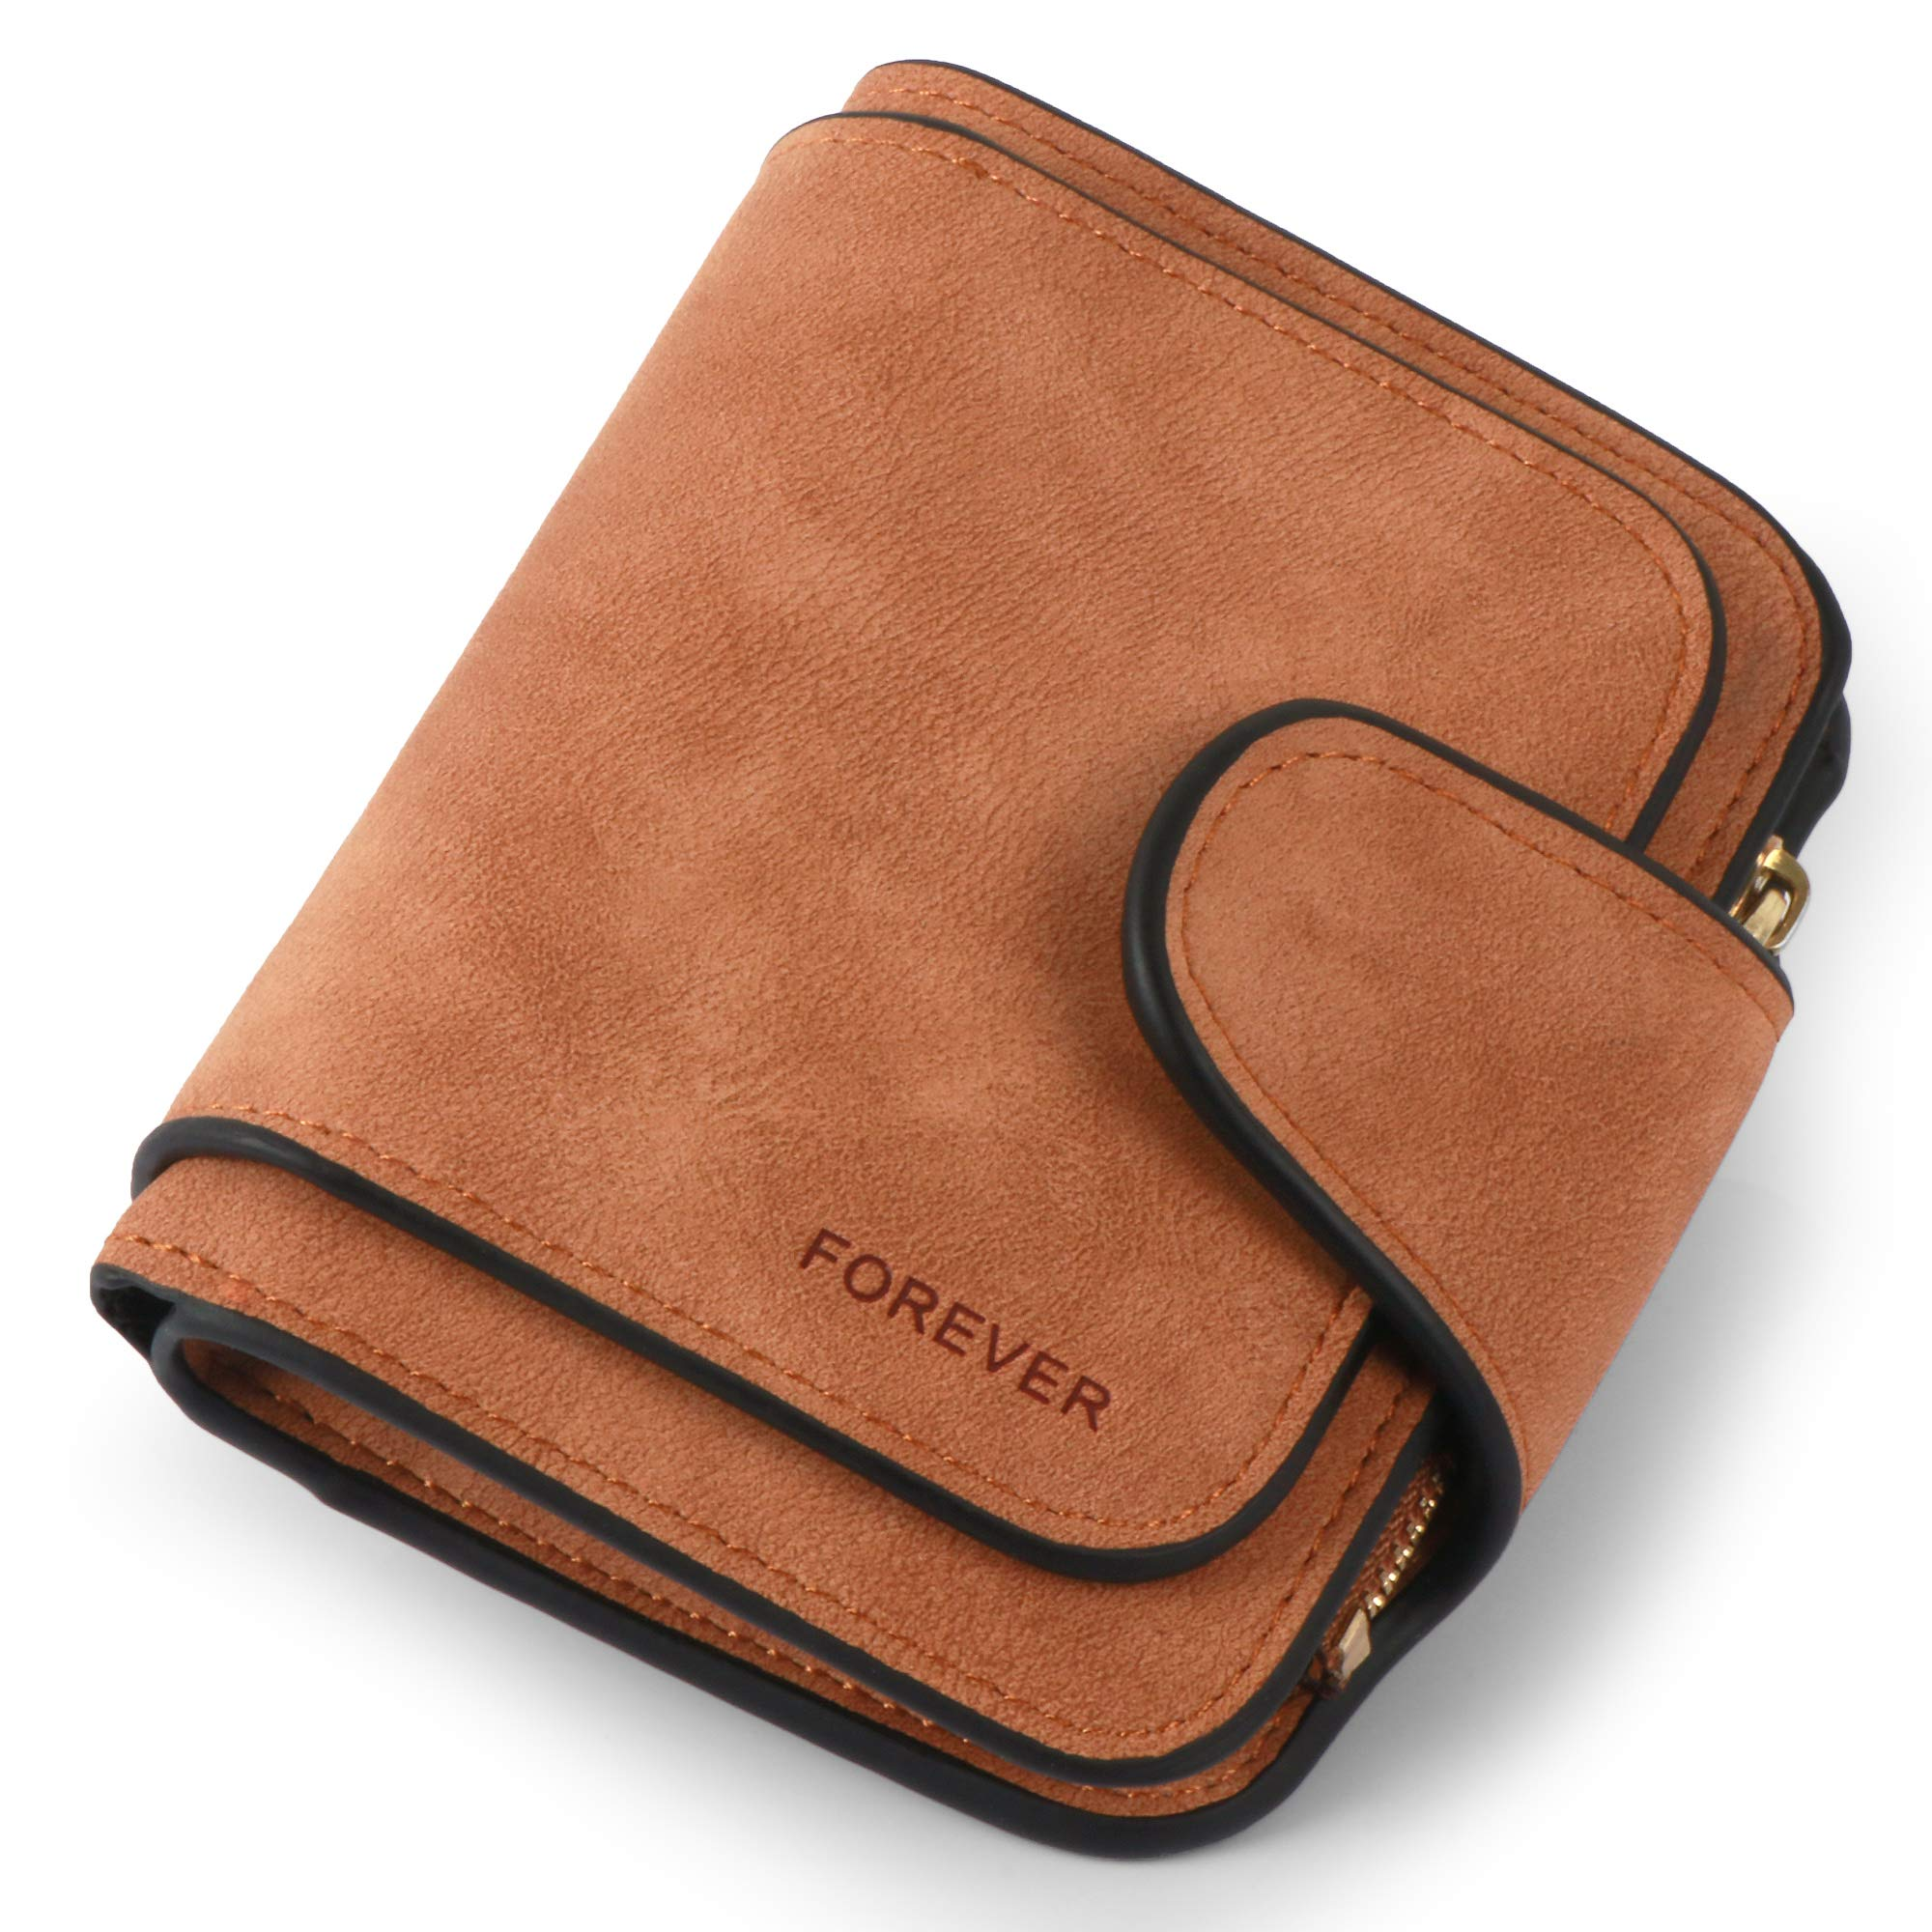 Women Purse Fashion Pu Leather Cute Clutch Small Ladies Credit Card Holder Wallet Organizer For Female Color - Brown